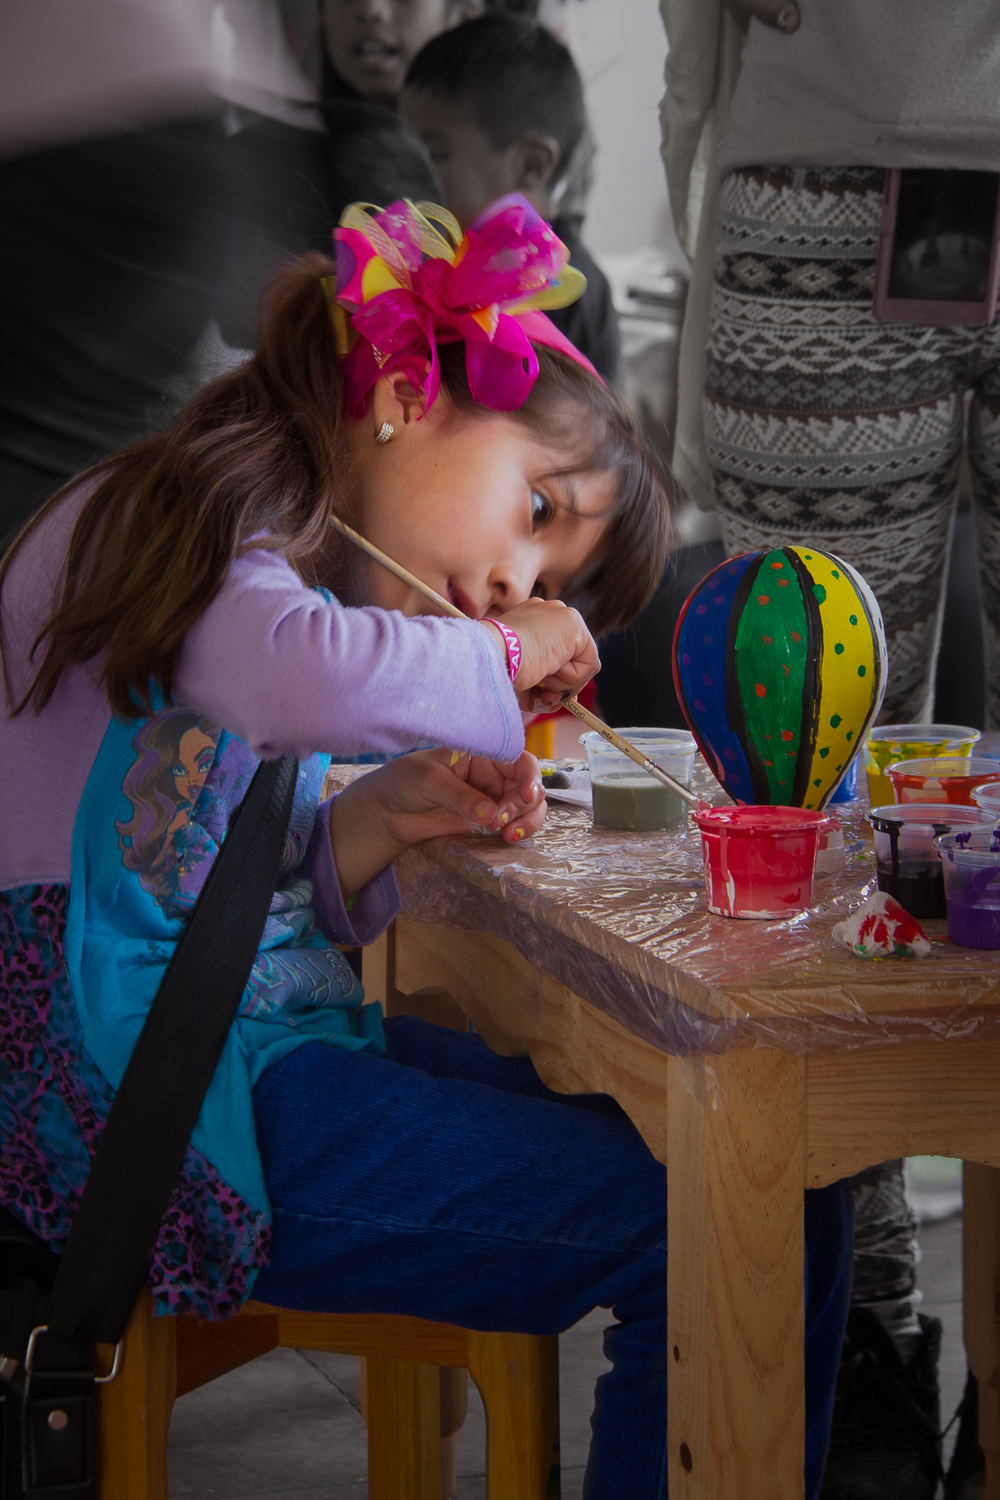 Quiet: Artist at Work    CantoyaFest: Paracho, Michoacán, Mexico — Saturday, July 19, 2014